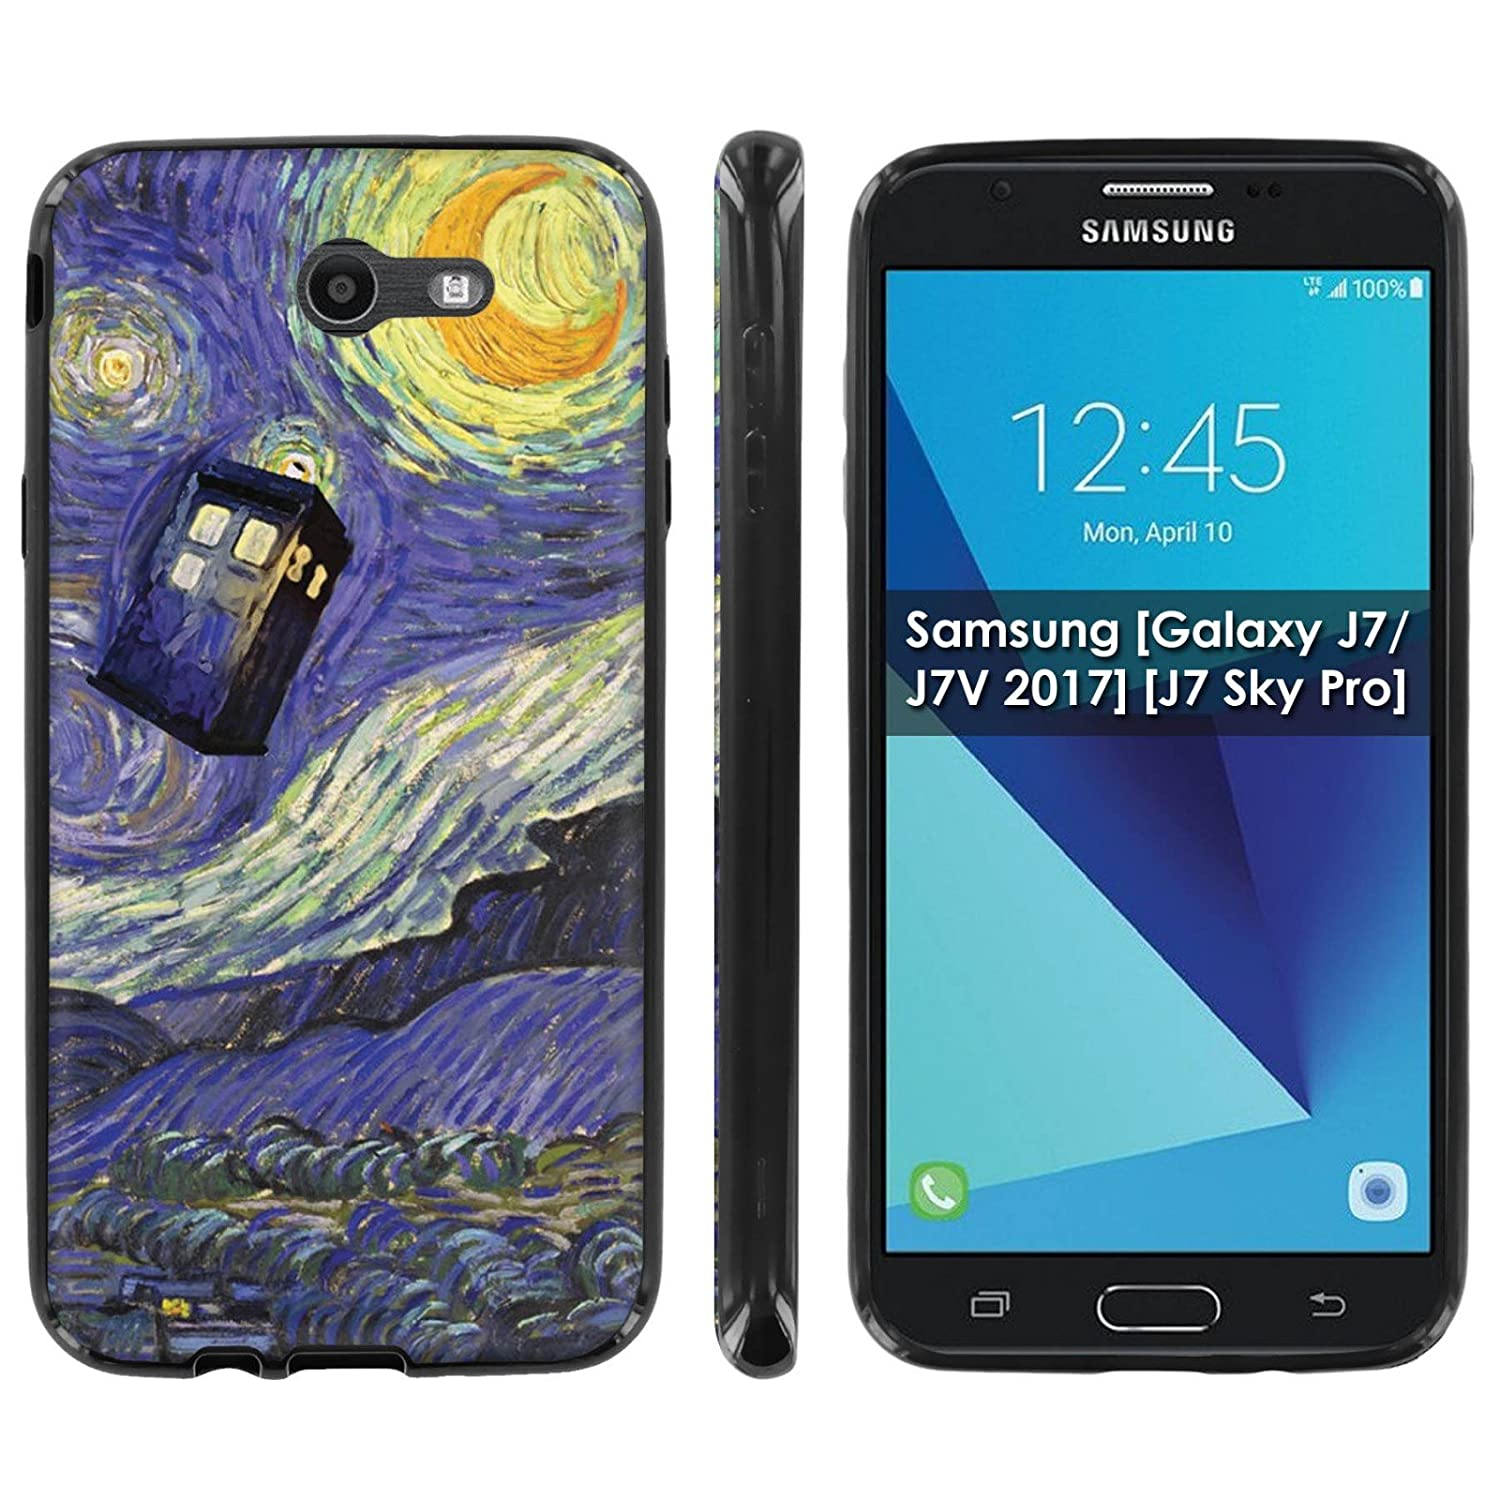 Amazon Samsung [Galaxy J7 J7V 2017] [J7 Sky Pro] Soft Mold [Mobiflare] [Black] Thin Gel Protect Cover [Stary Night Doctor] for Galaxy J7 [2017] [5 5""